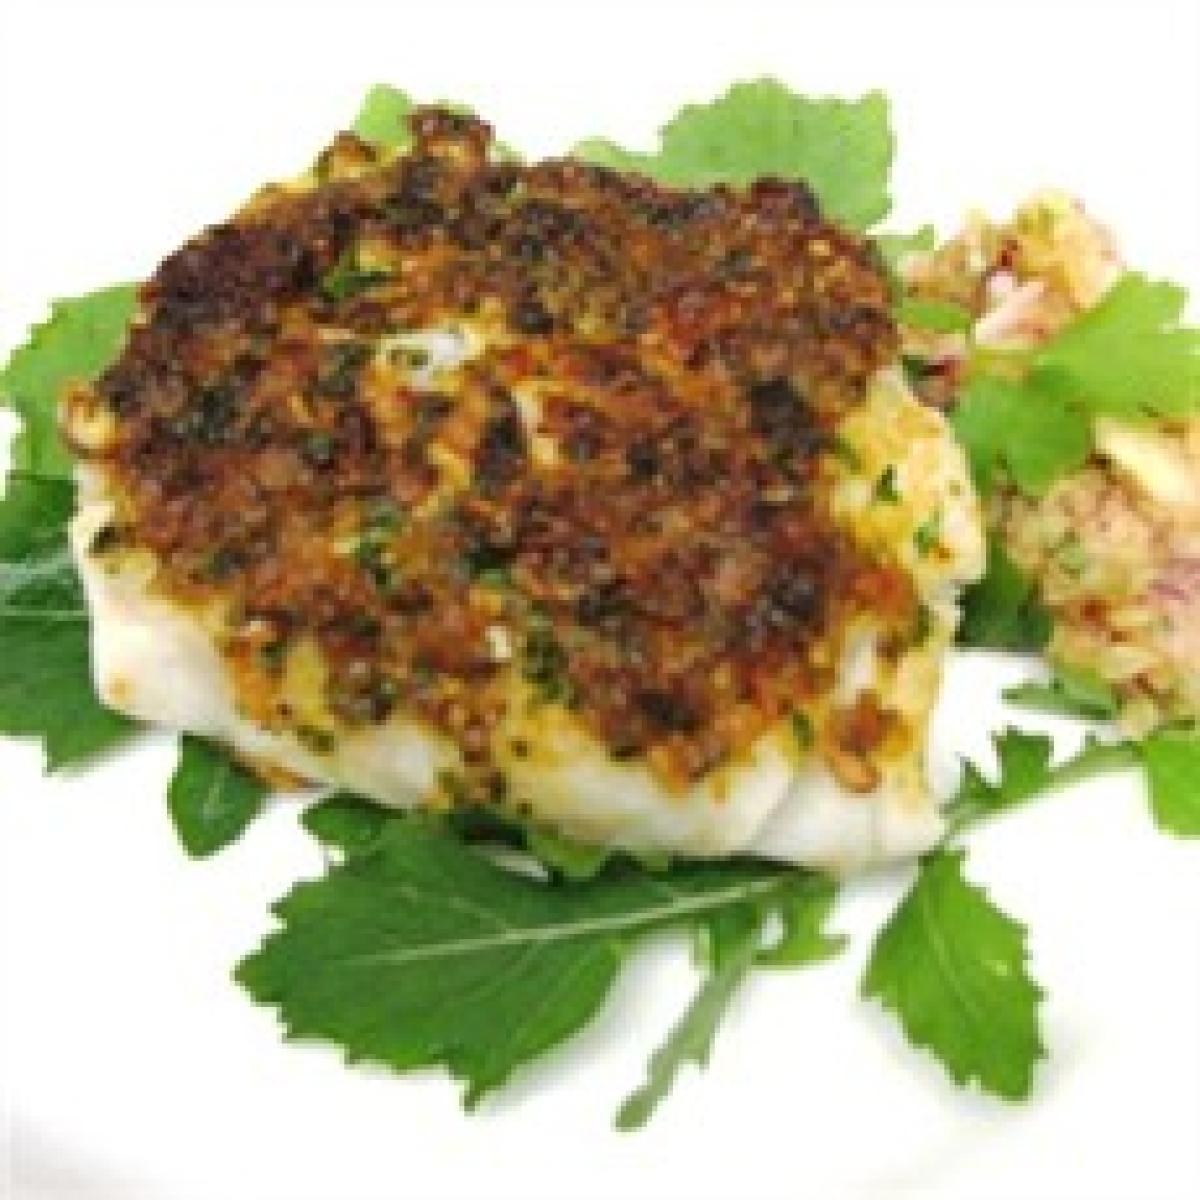 Spicy marinaded fish 006 27329